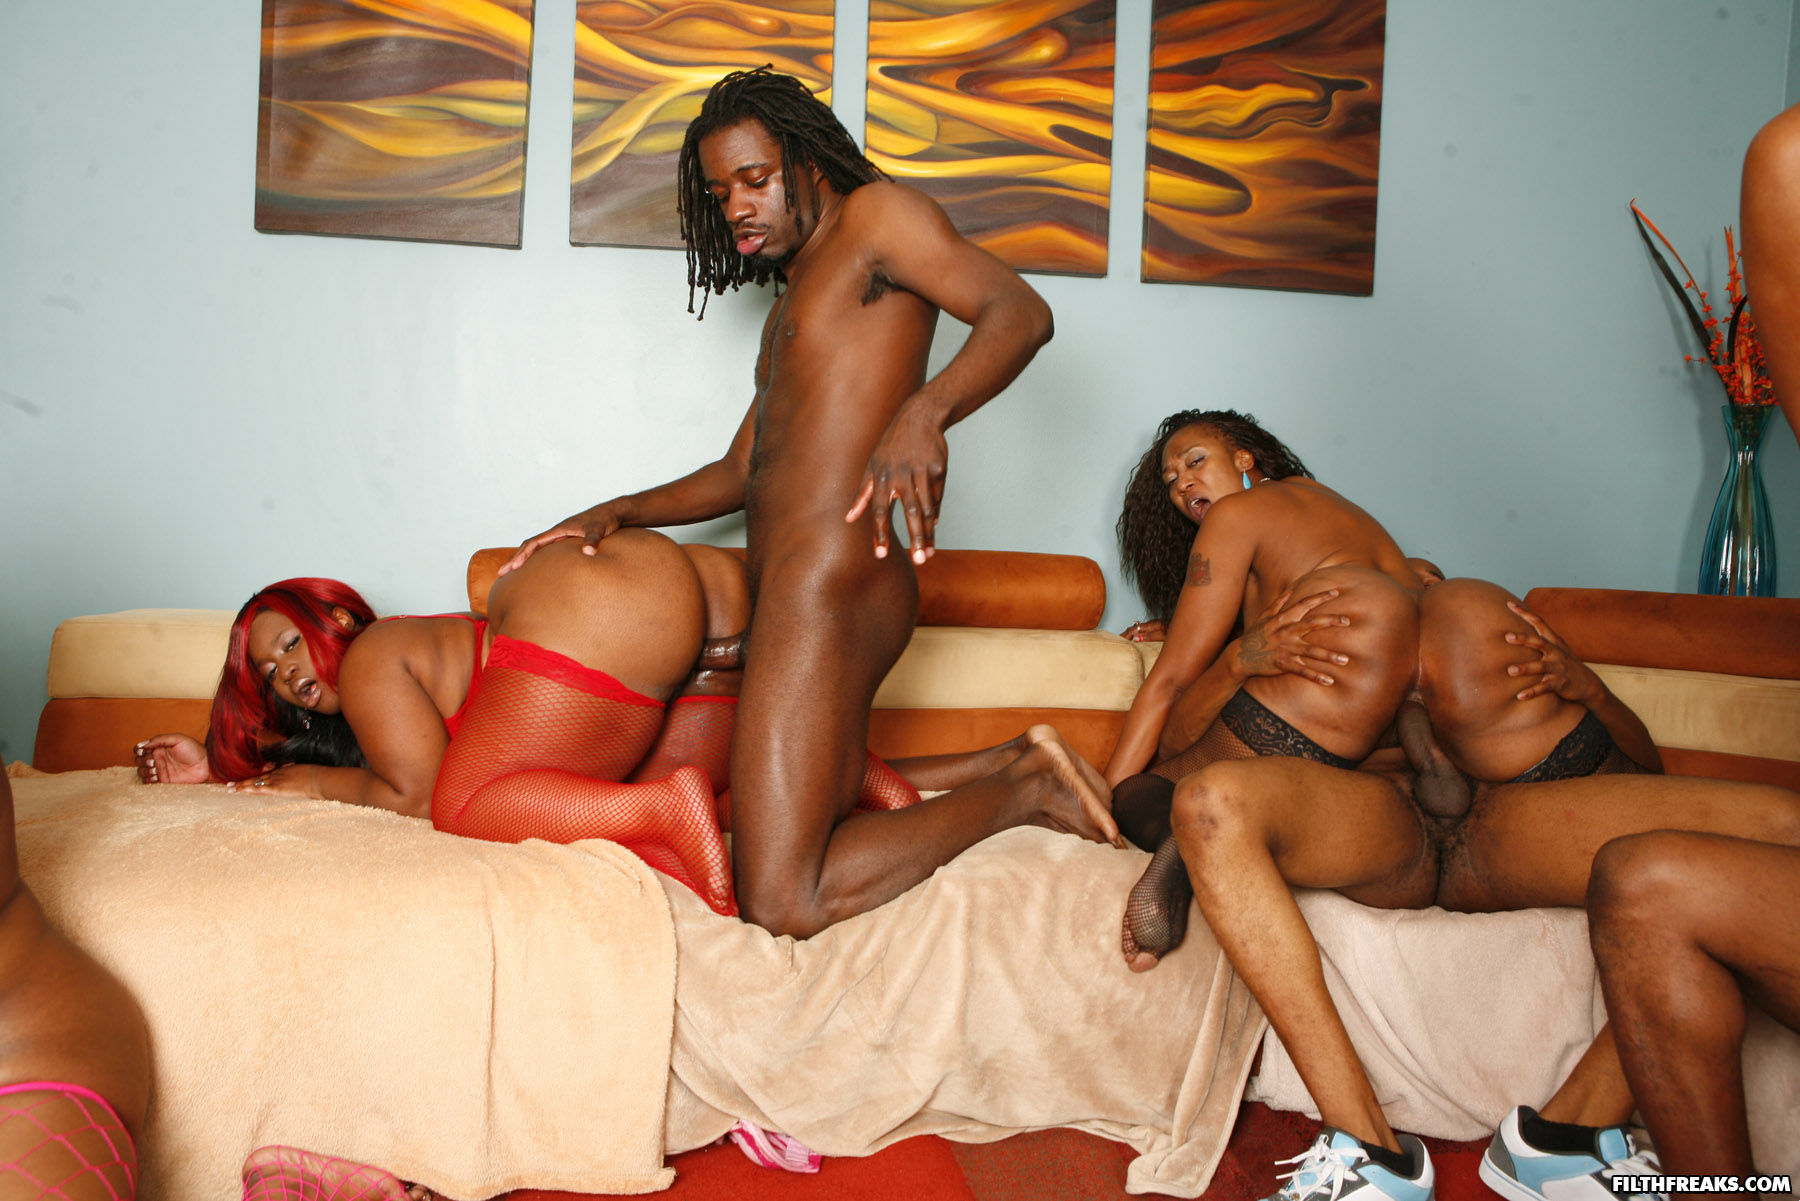 orgy-videos-for-sale